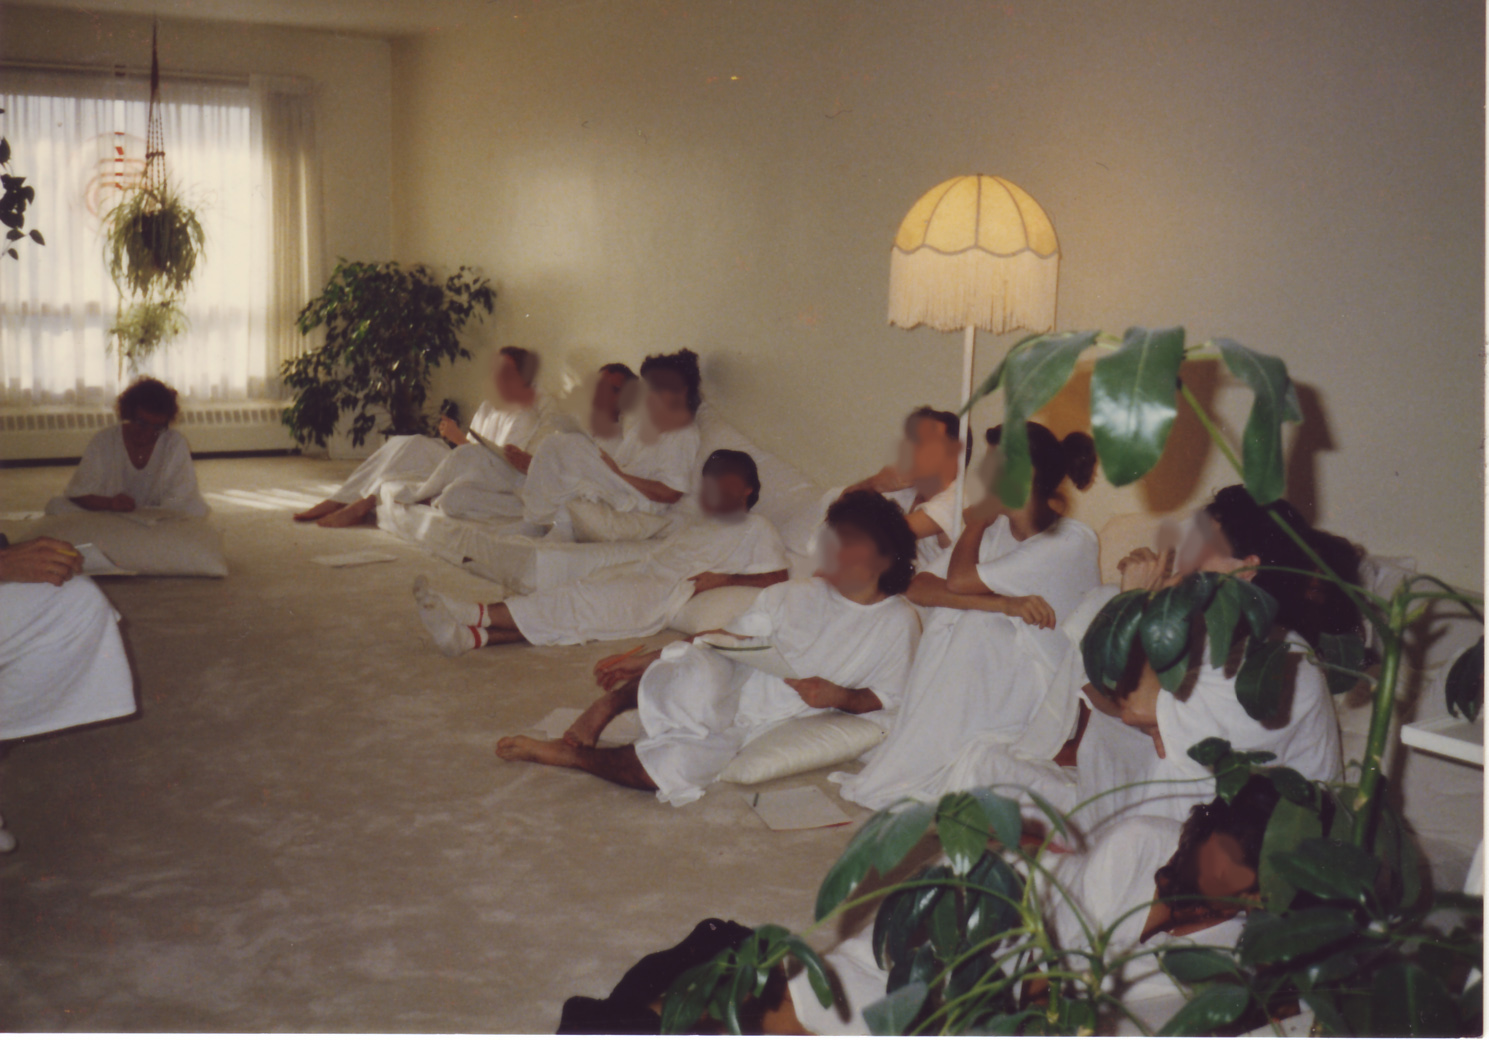 Jean-Denis Saint-Cyr's home Meditation room with Raelians and non-Raeliens in 1989